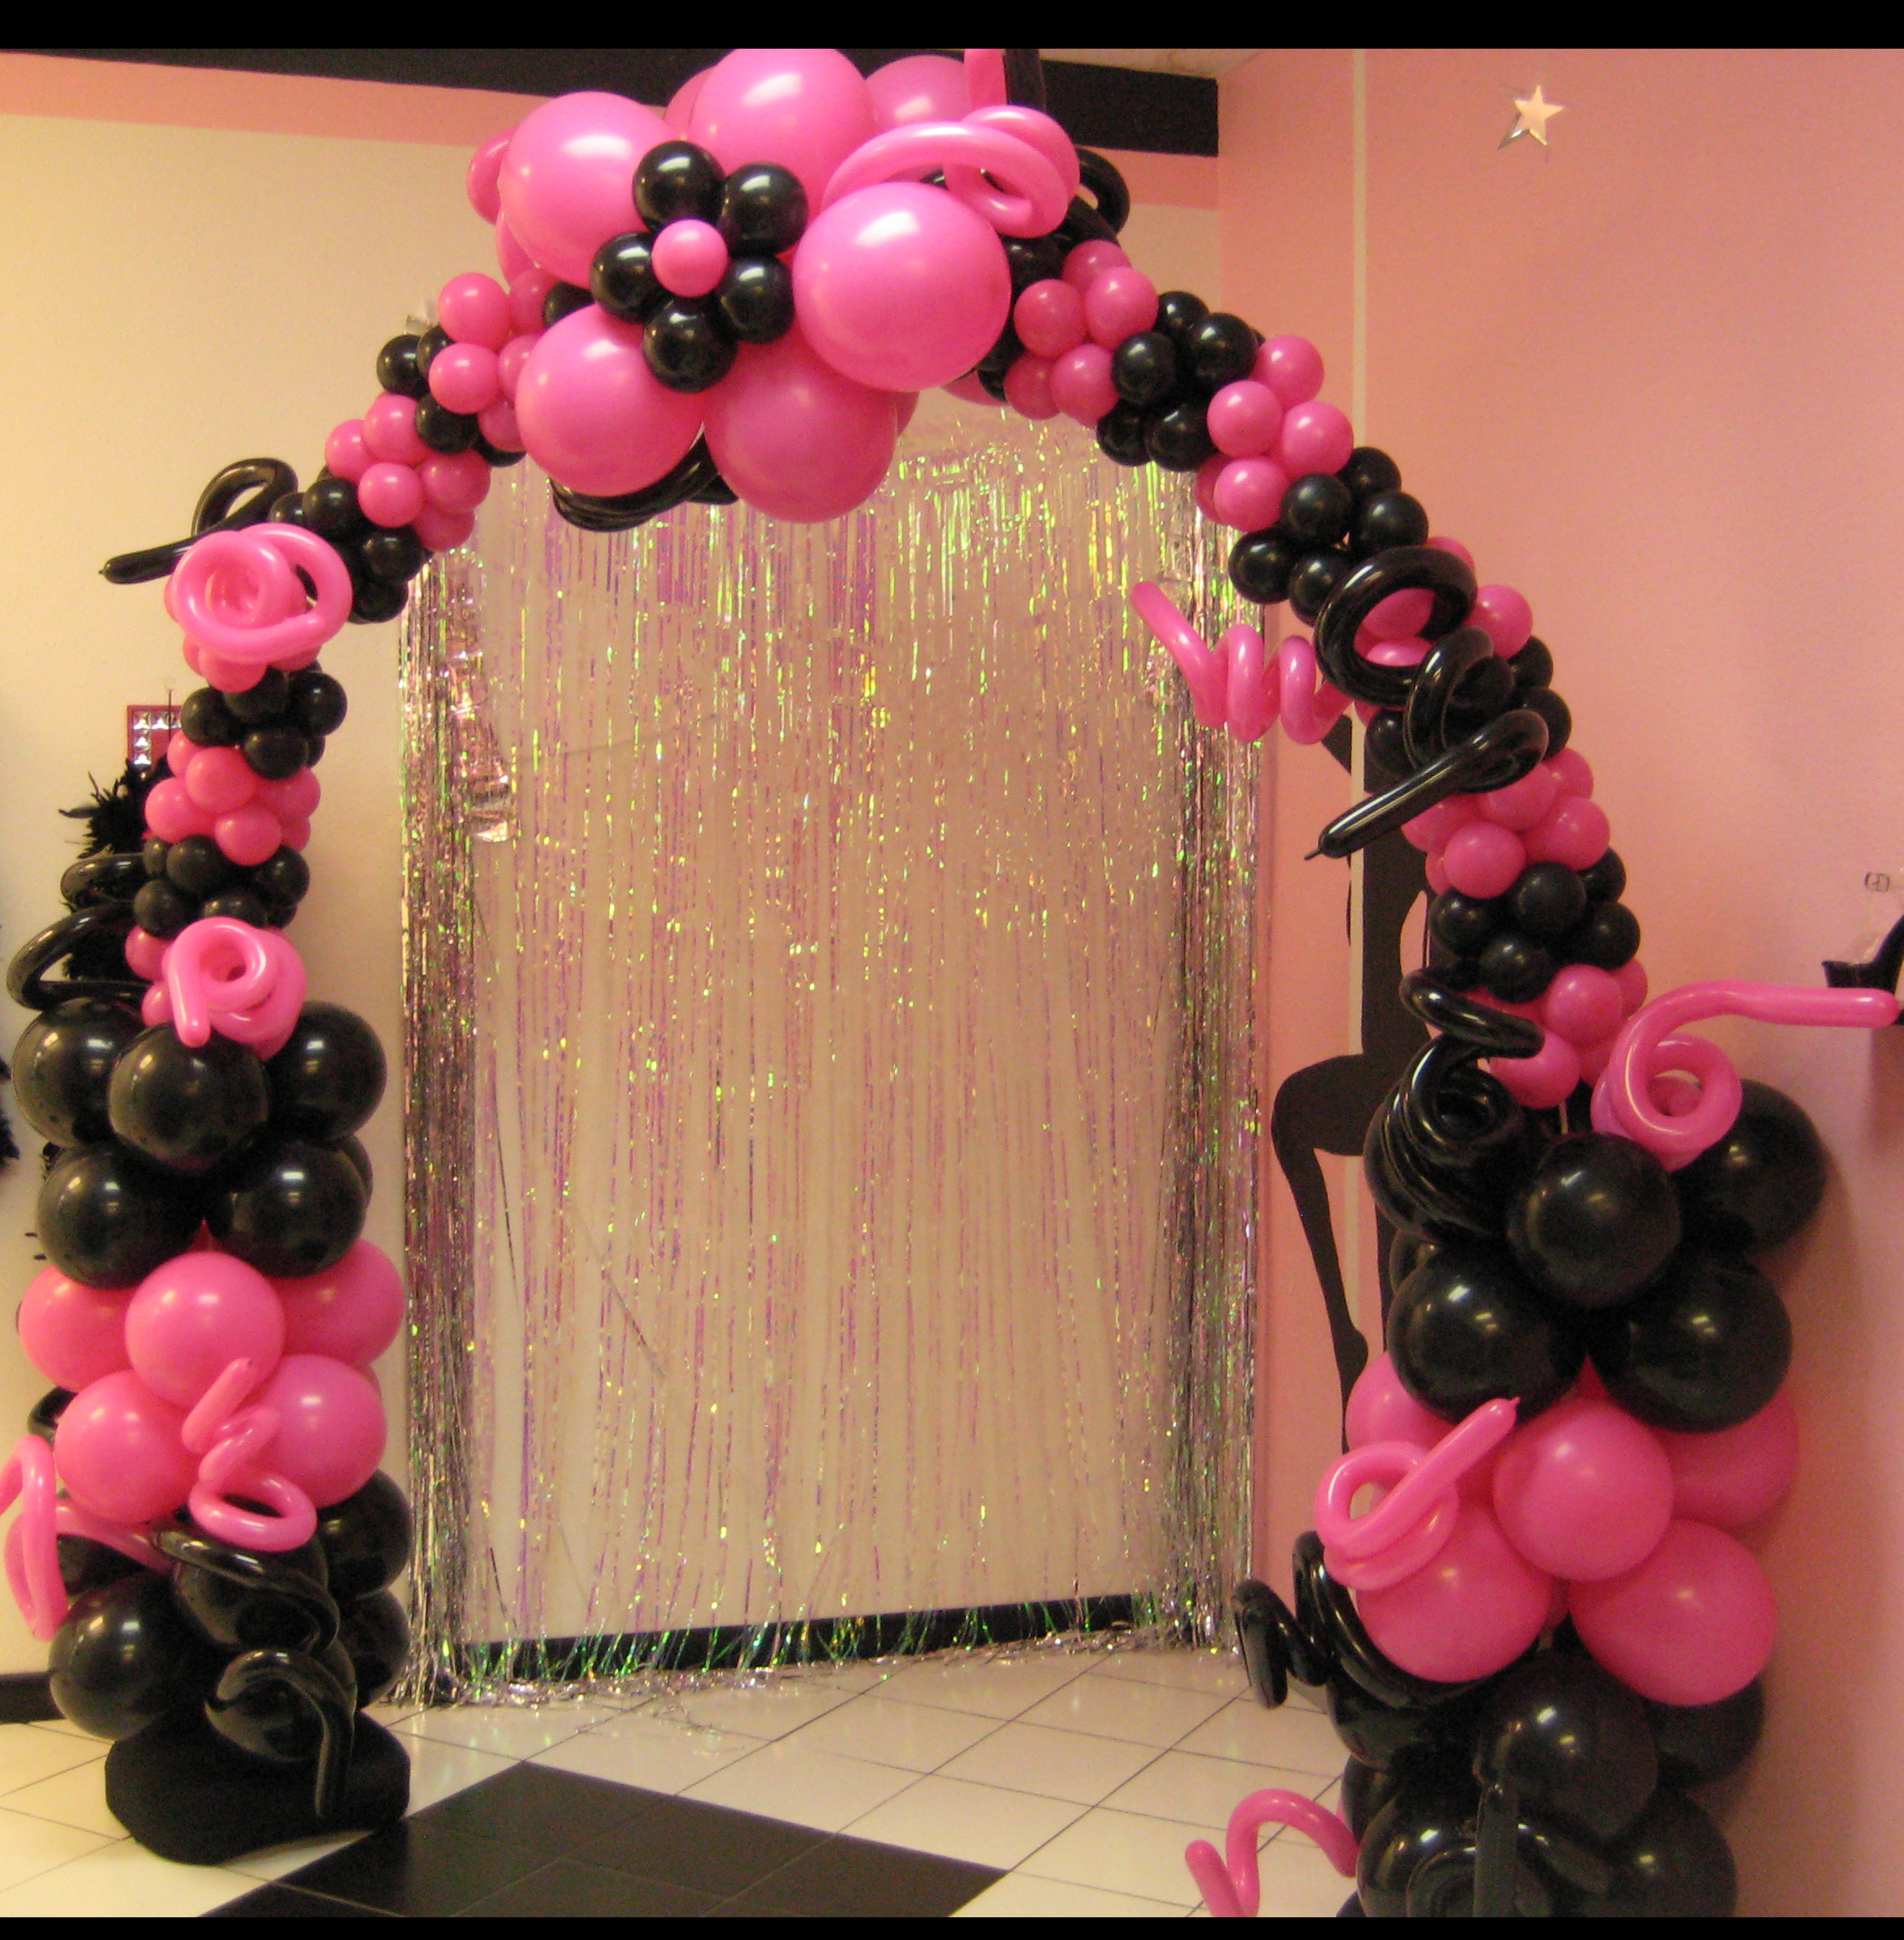 Balloon arches trade shows and corporate company events